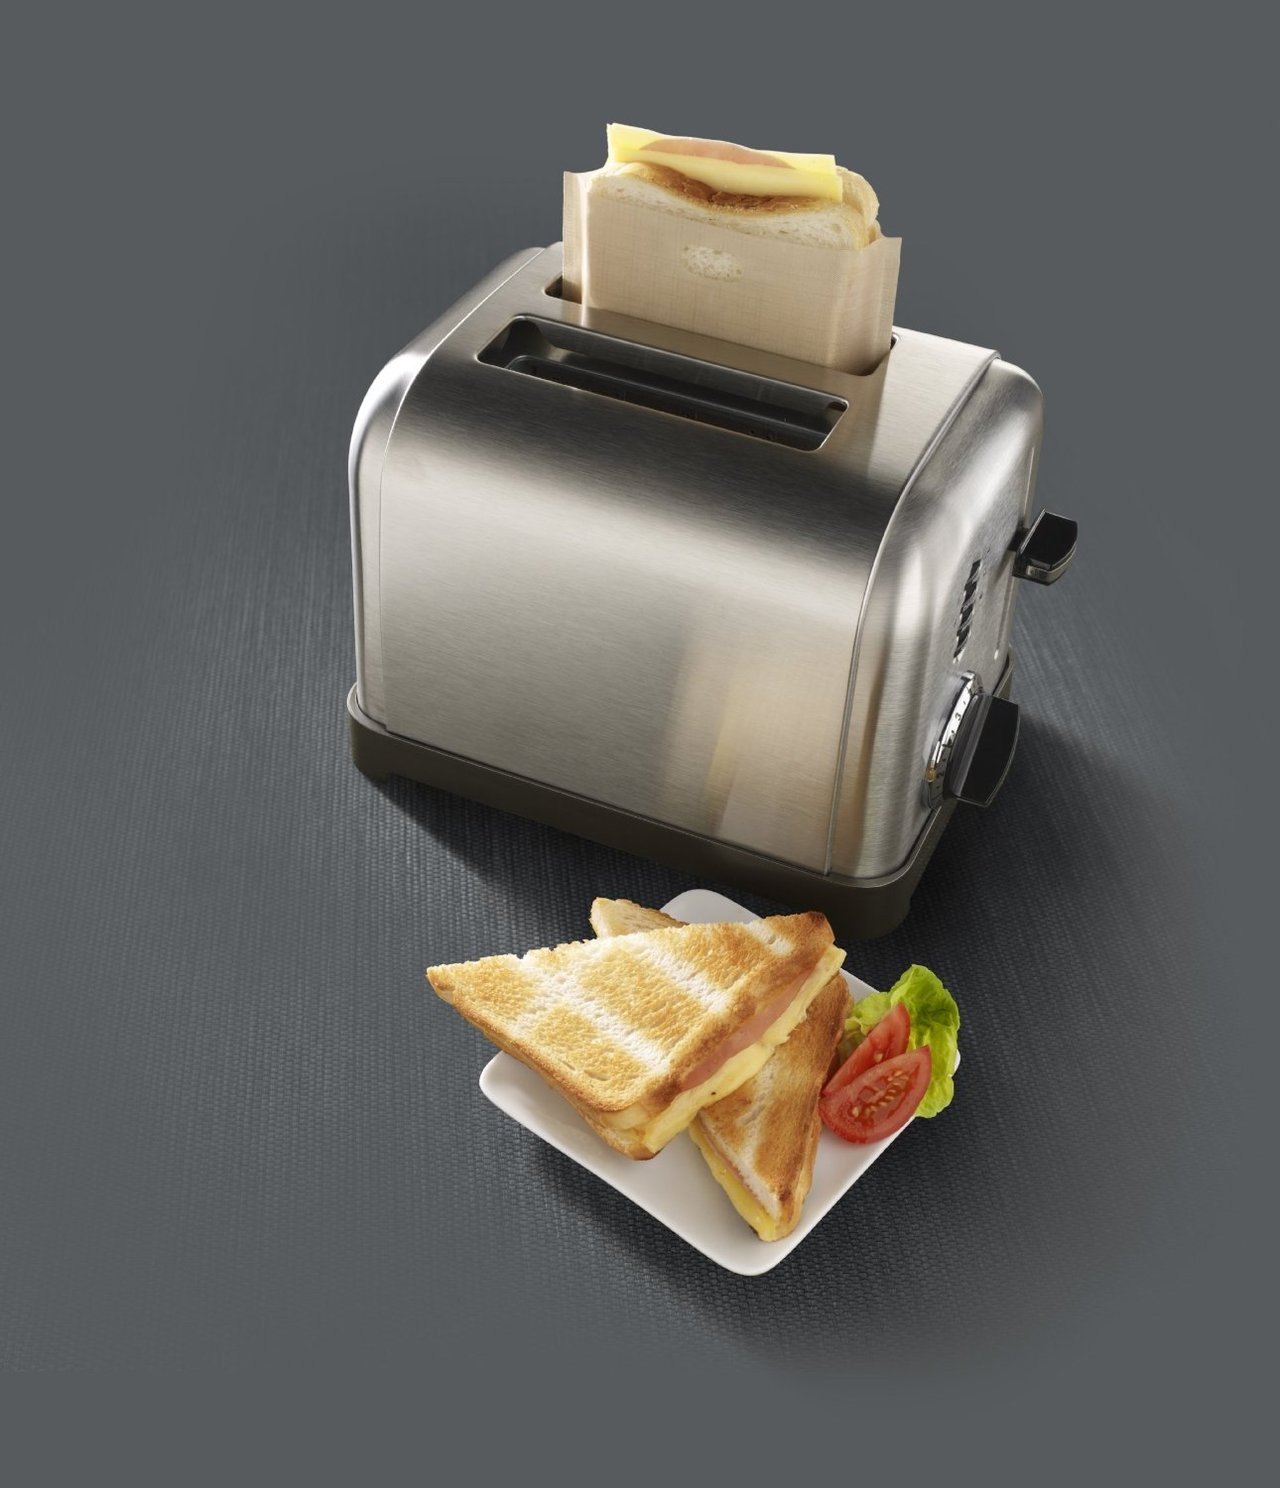 This glorious invention allows you to make a grilled cheese with only your toaster and no mess.  Let's say it all together now: HOLY SHIT. My money couldn't have been spent faster.